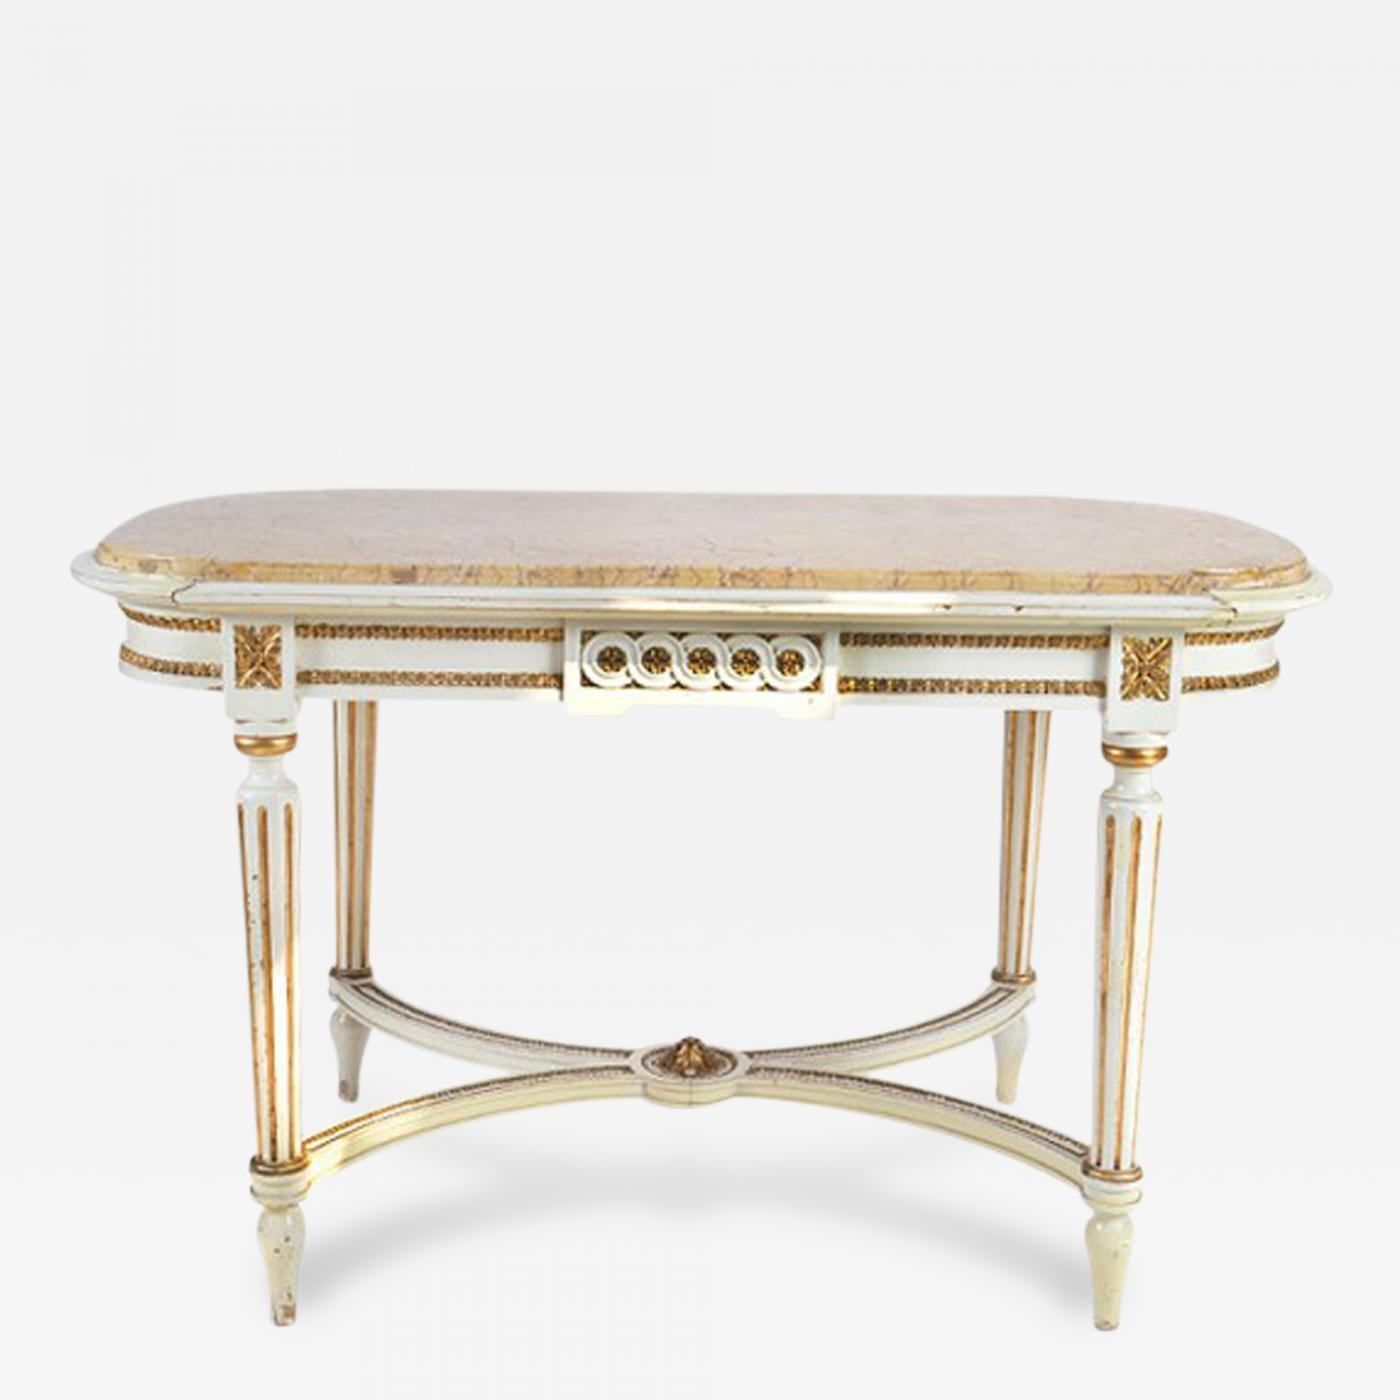 Swedish gustavian period tea coffee marble top table 19th century listings furniture tables tea tables swedish gustavian period tea coffee geotapseo Gallery